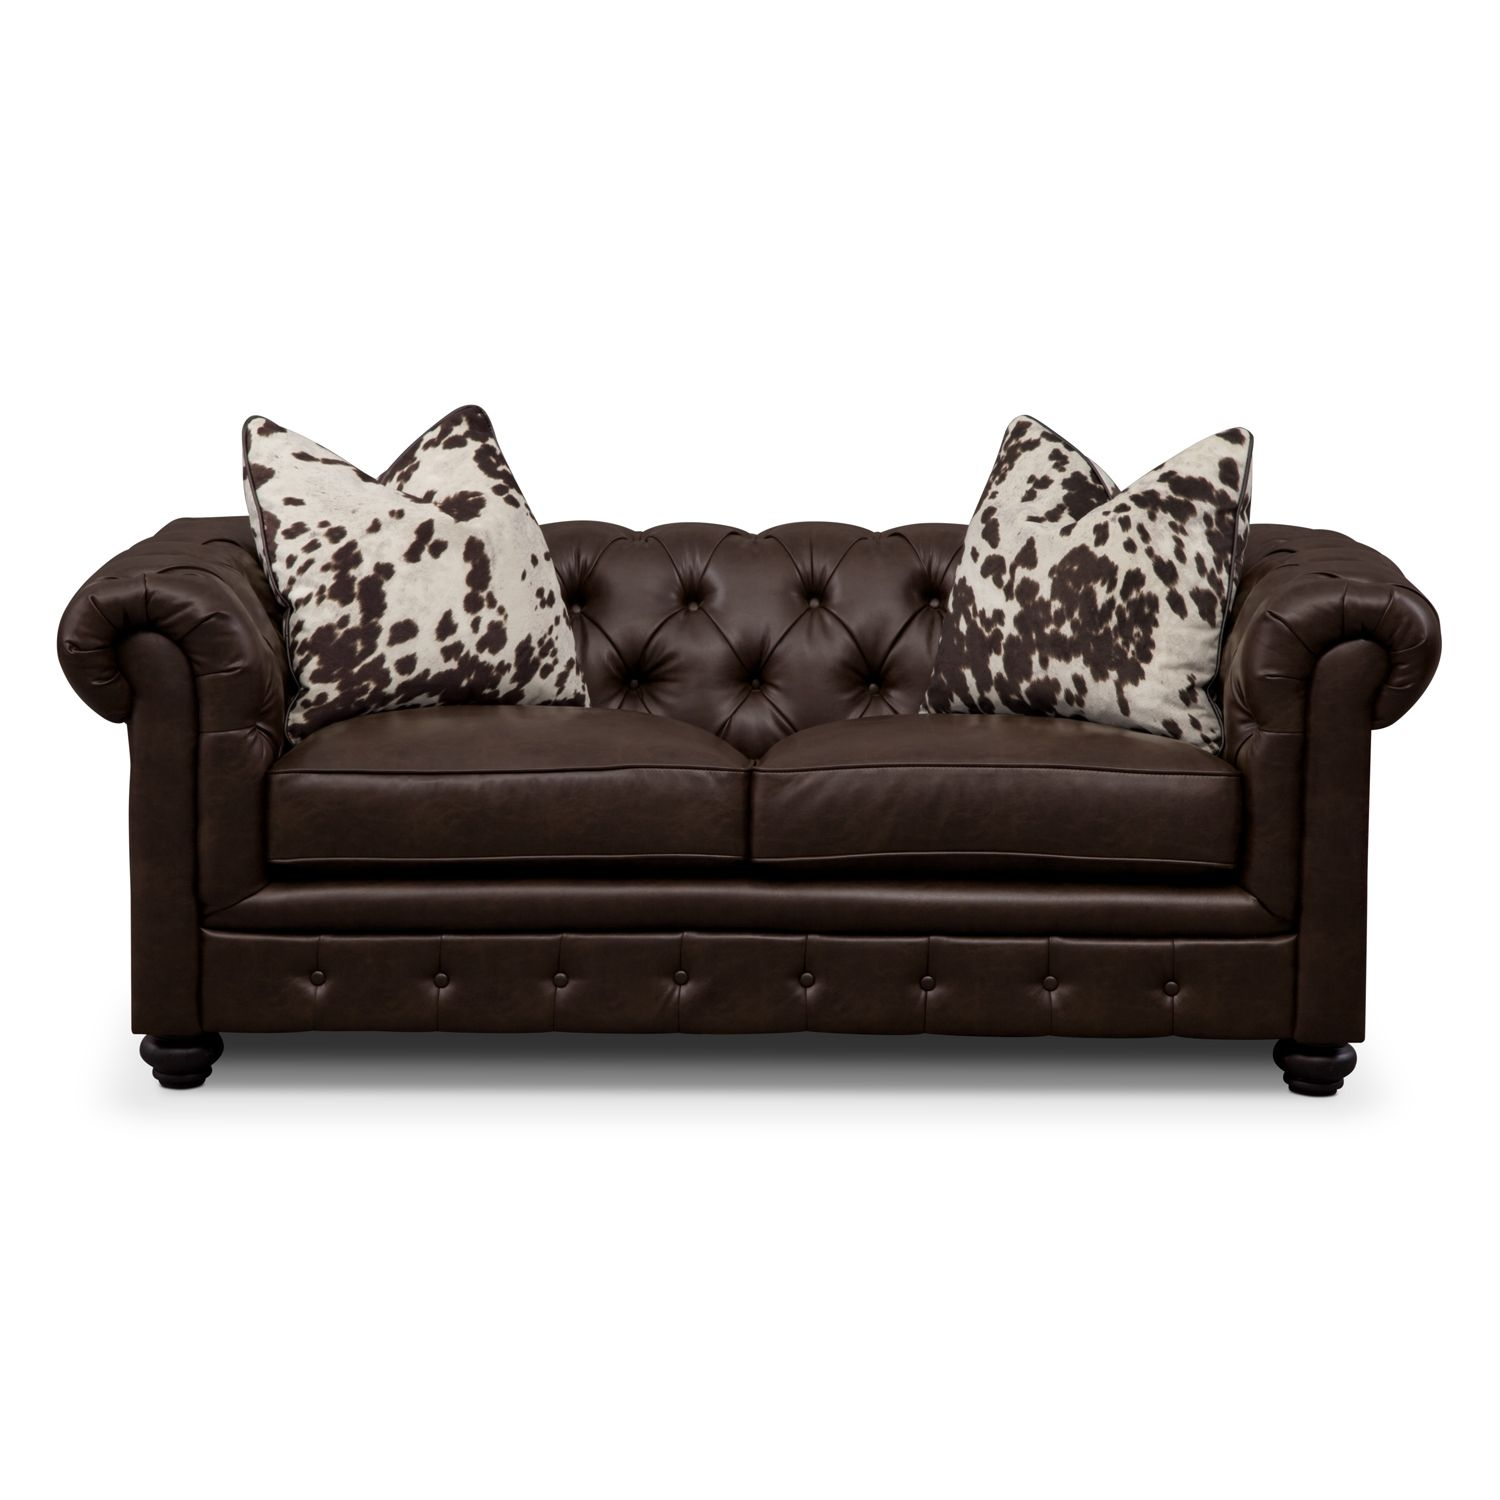 Awe Inspiring Madeline Ii Apartment Sofa Value City Furniture Ocoug Best Dining Table And Chair Ideas Images Ocougorg